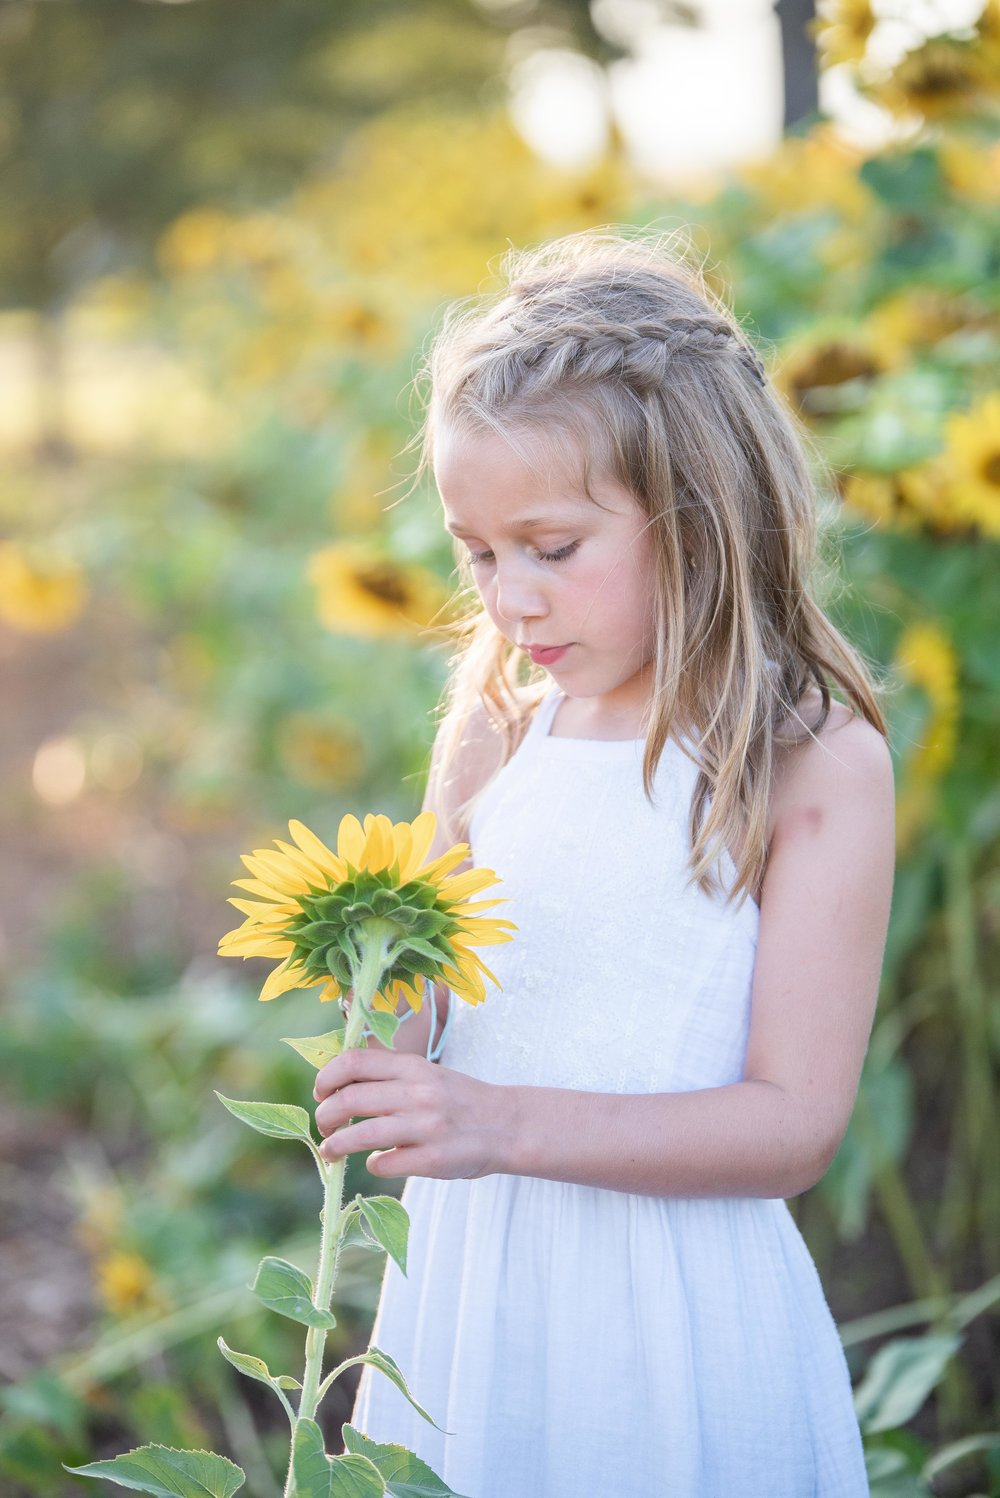 Dogwood Farm - Sunflower Field Photography Session - Sunflower Family Portraits - Fall Family Portraits - Summer Family Portraits - NC Photographer - NC Wedding Photographer - High Point Wedding Photographer -9.jpg